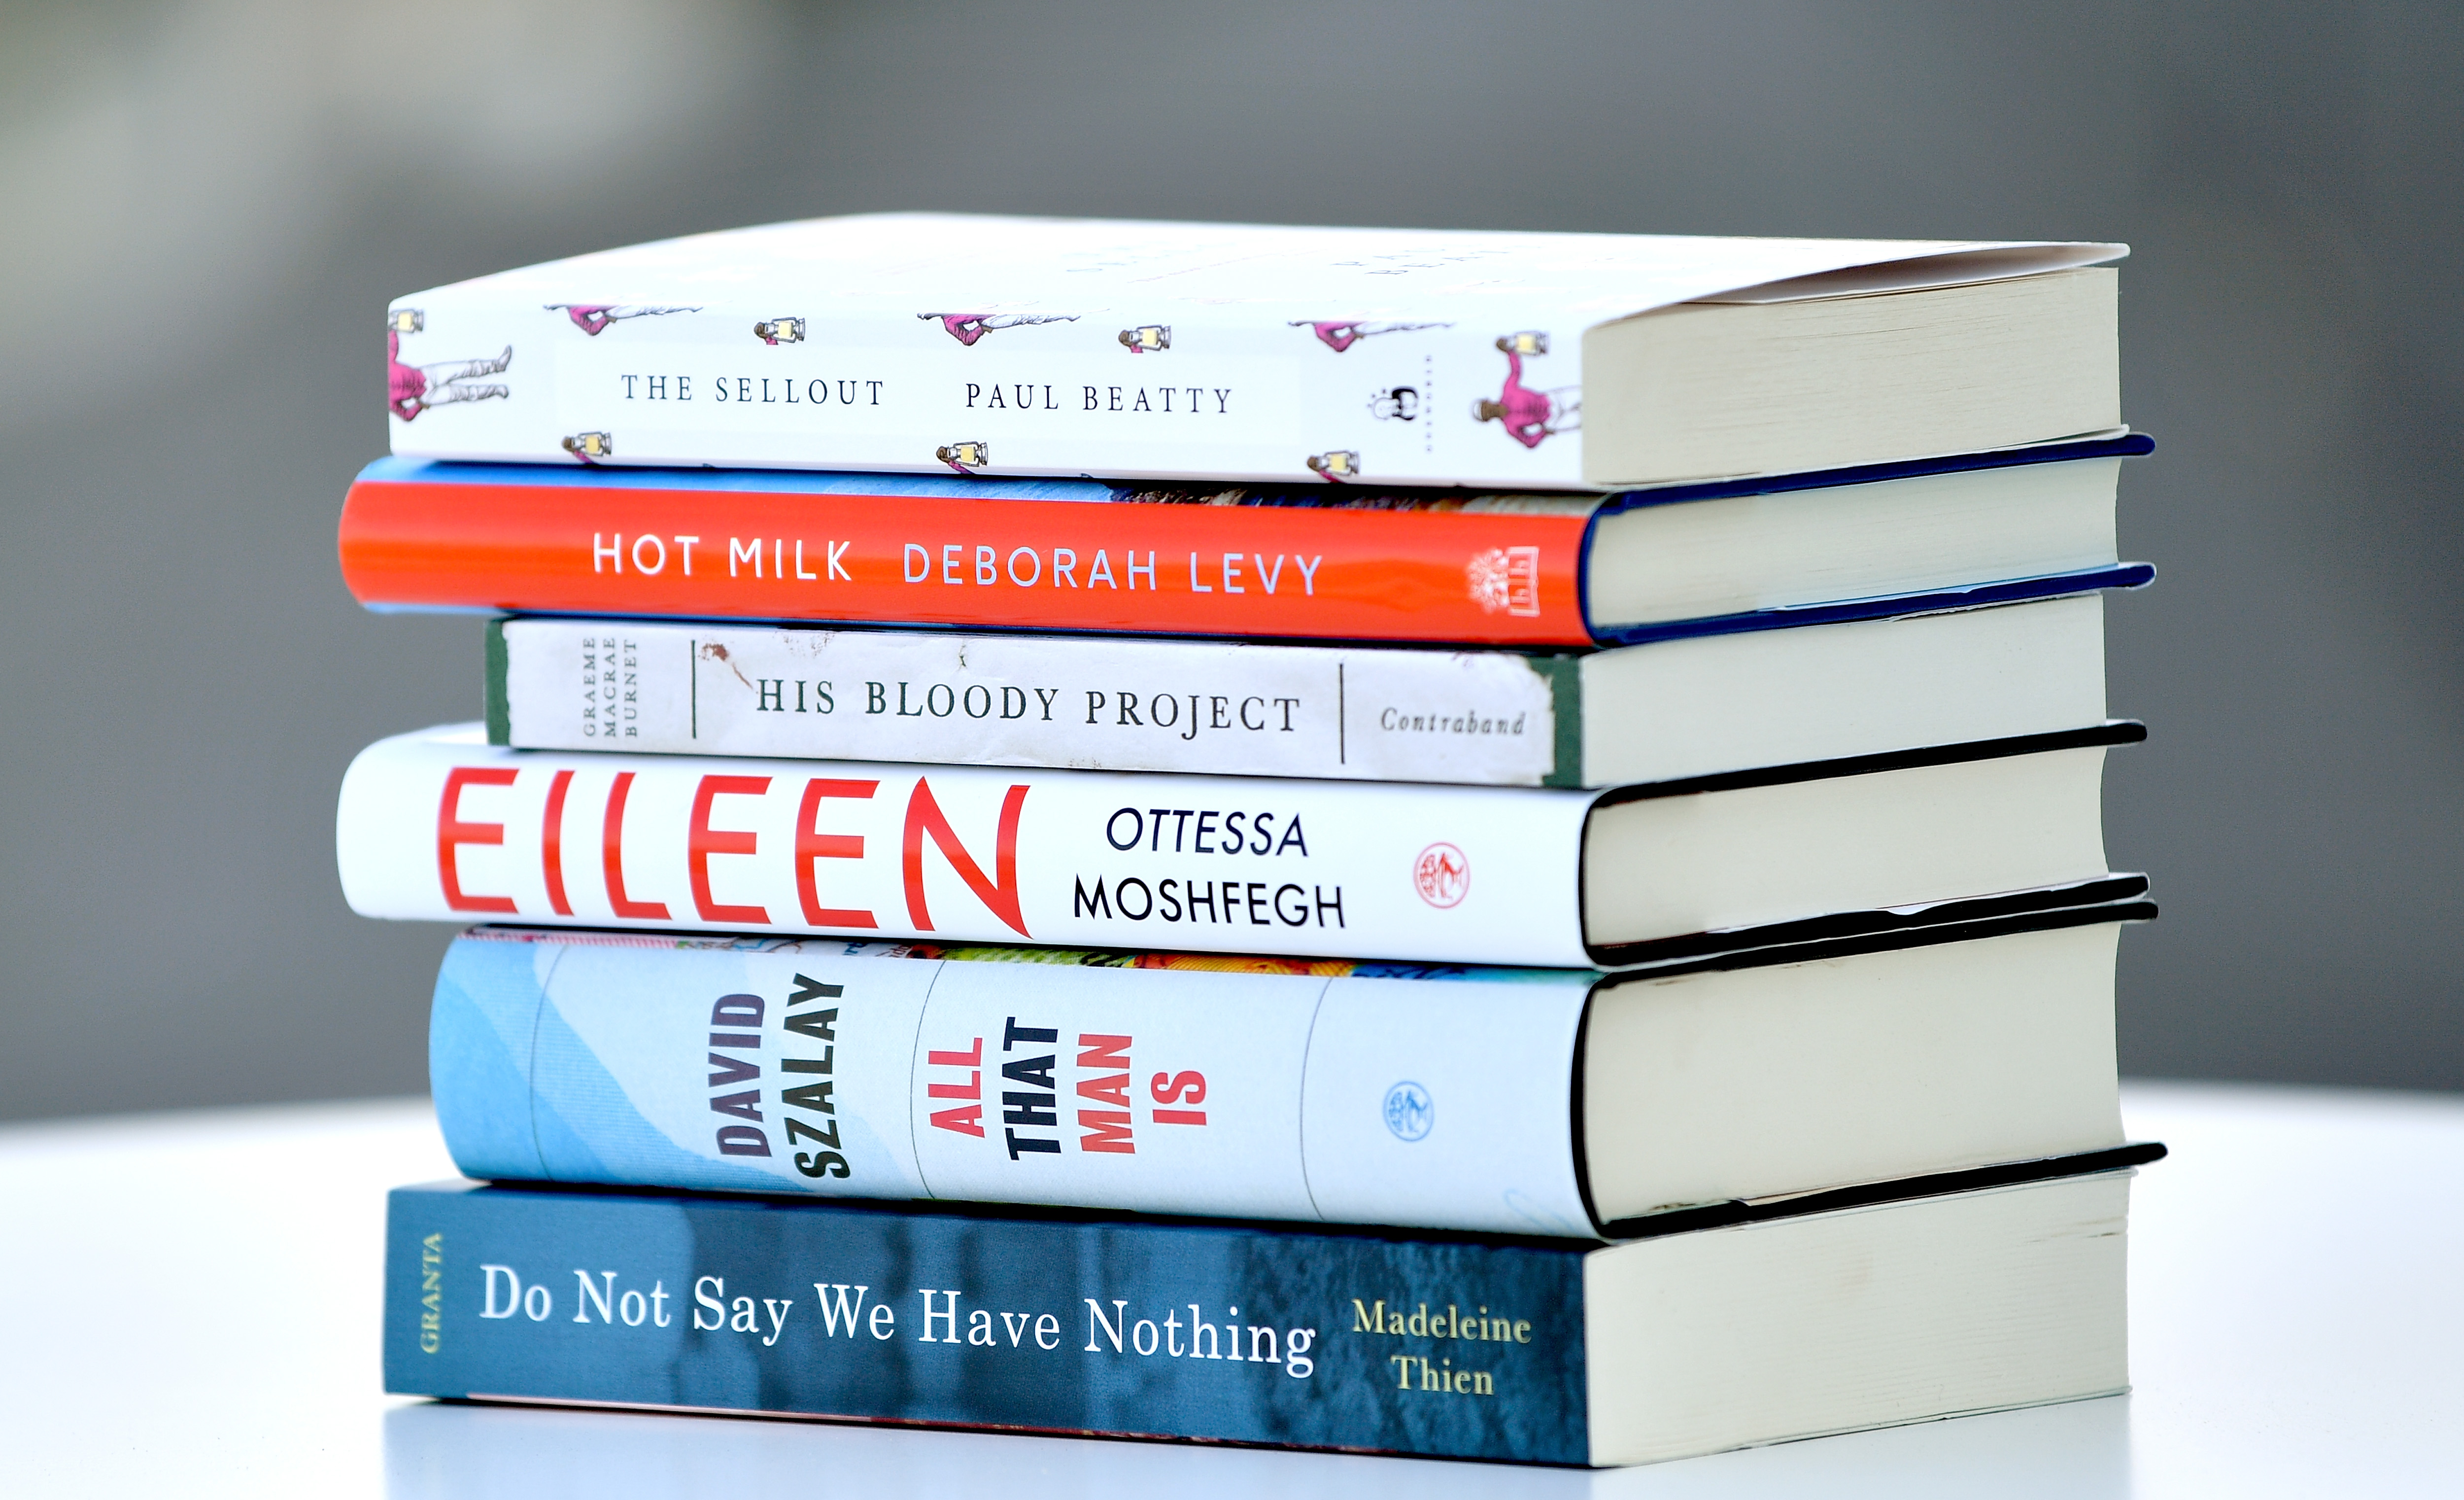 LONDON, ENGLAND - SEPTEMBER 13:  A general view of the books shortlisted for the Man Booker Prize For Fiction during a press conference at the offices of sponsor Man Group on September 13, 2016 in London, England.  (Photo by Gareth Cattermole/Getty Images)